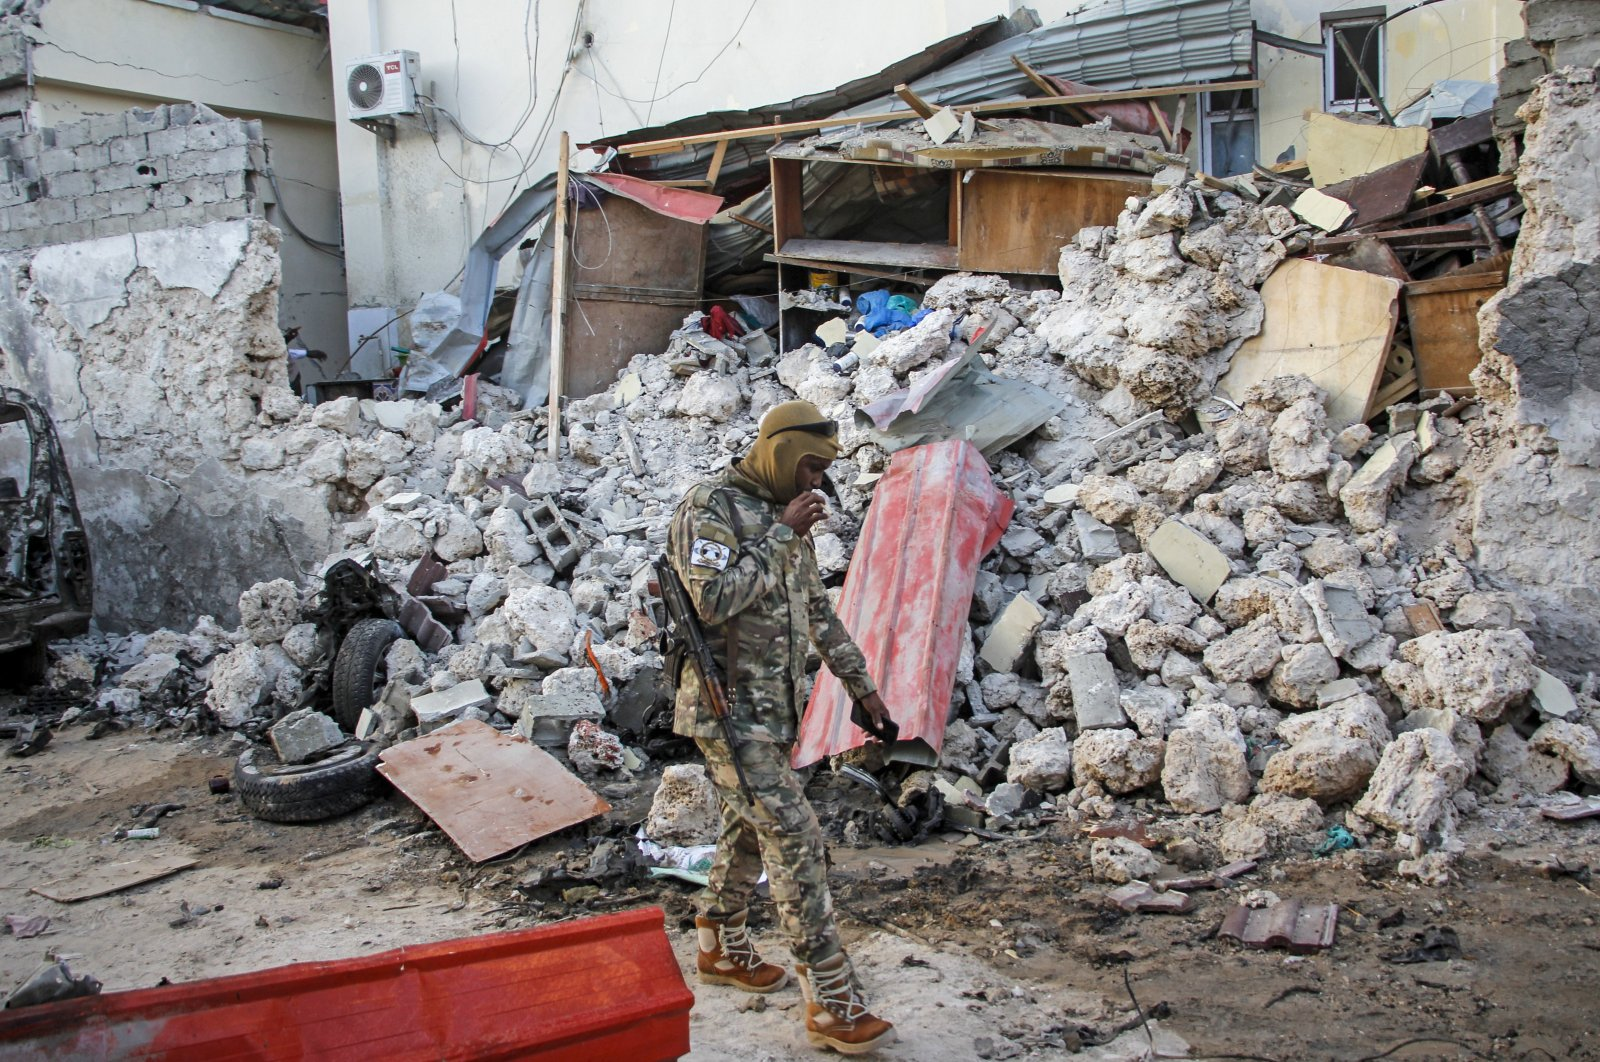 A soldier walks past wreckage in the aftermath of an attack on the Afrik hotel in Mogadishu, Somalia, Feb. 1, 2021. (AP Photo)